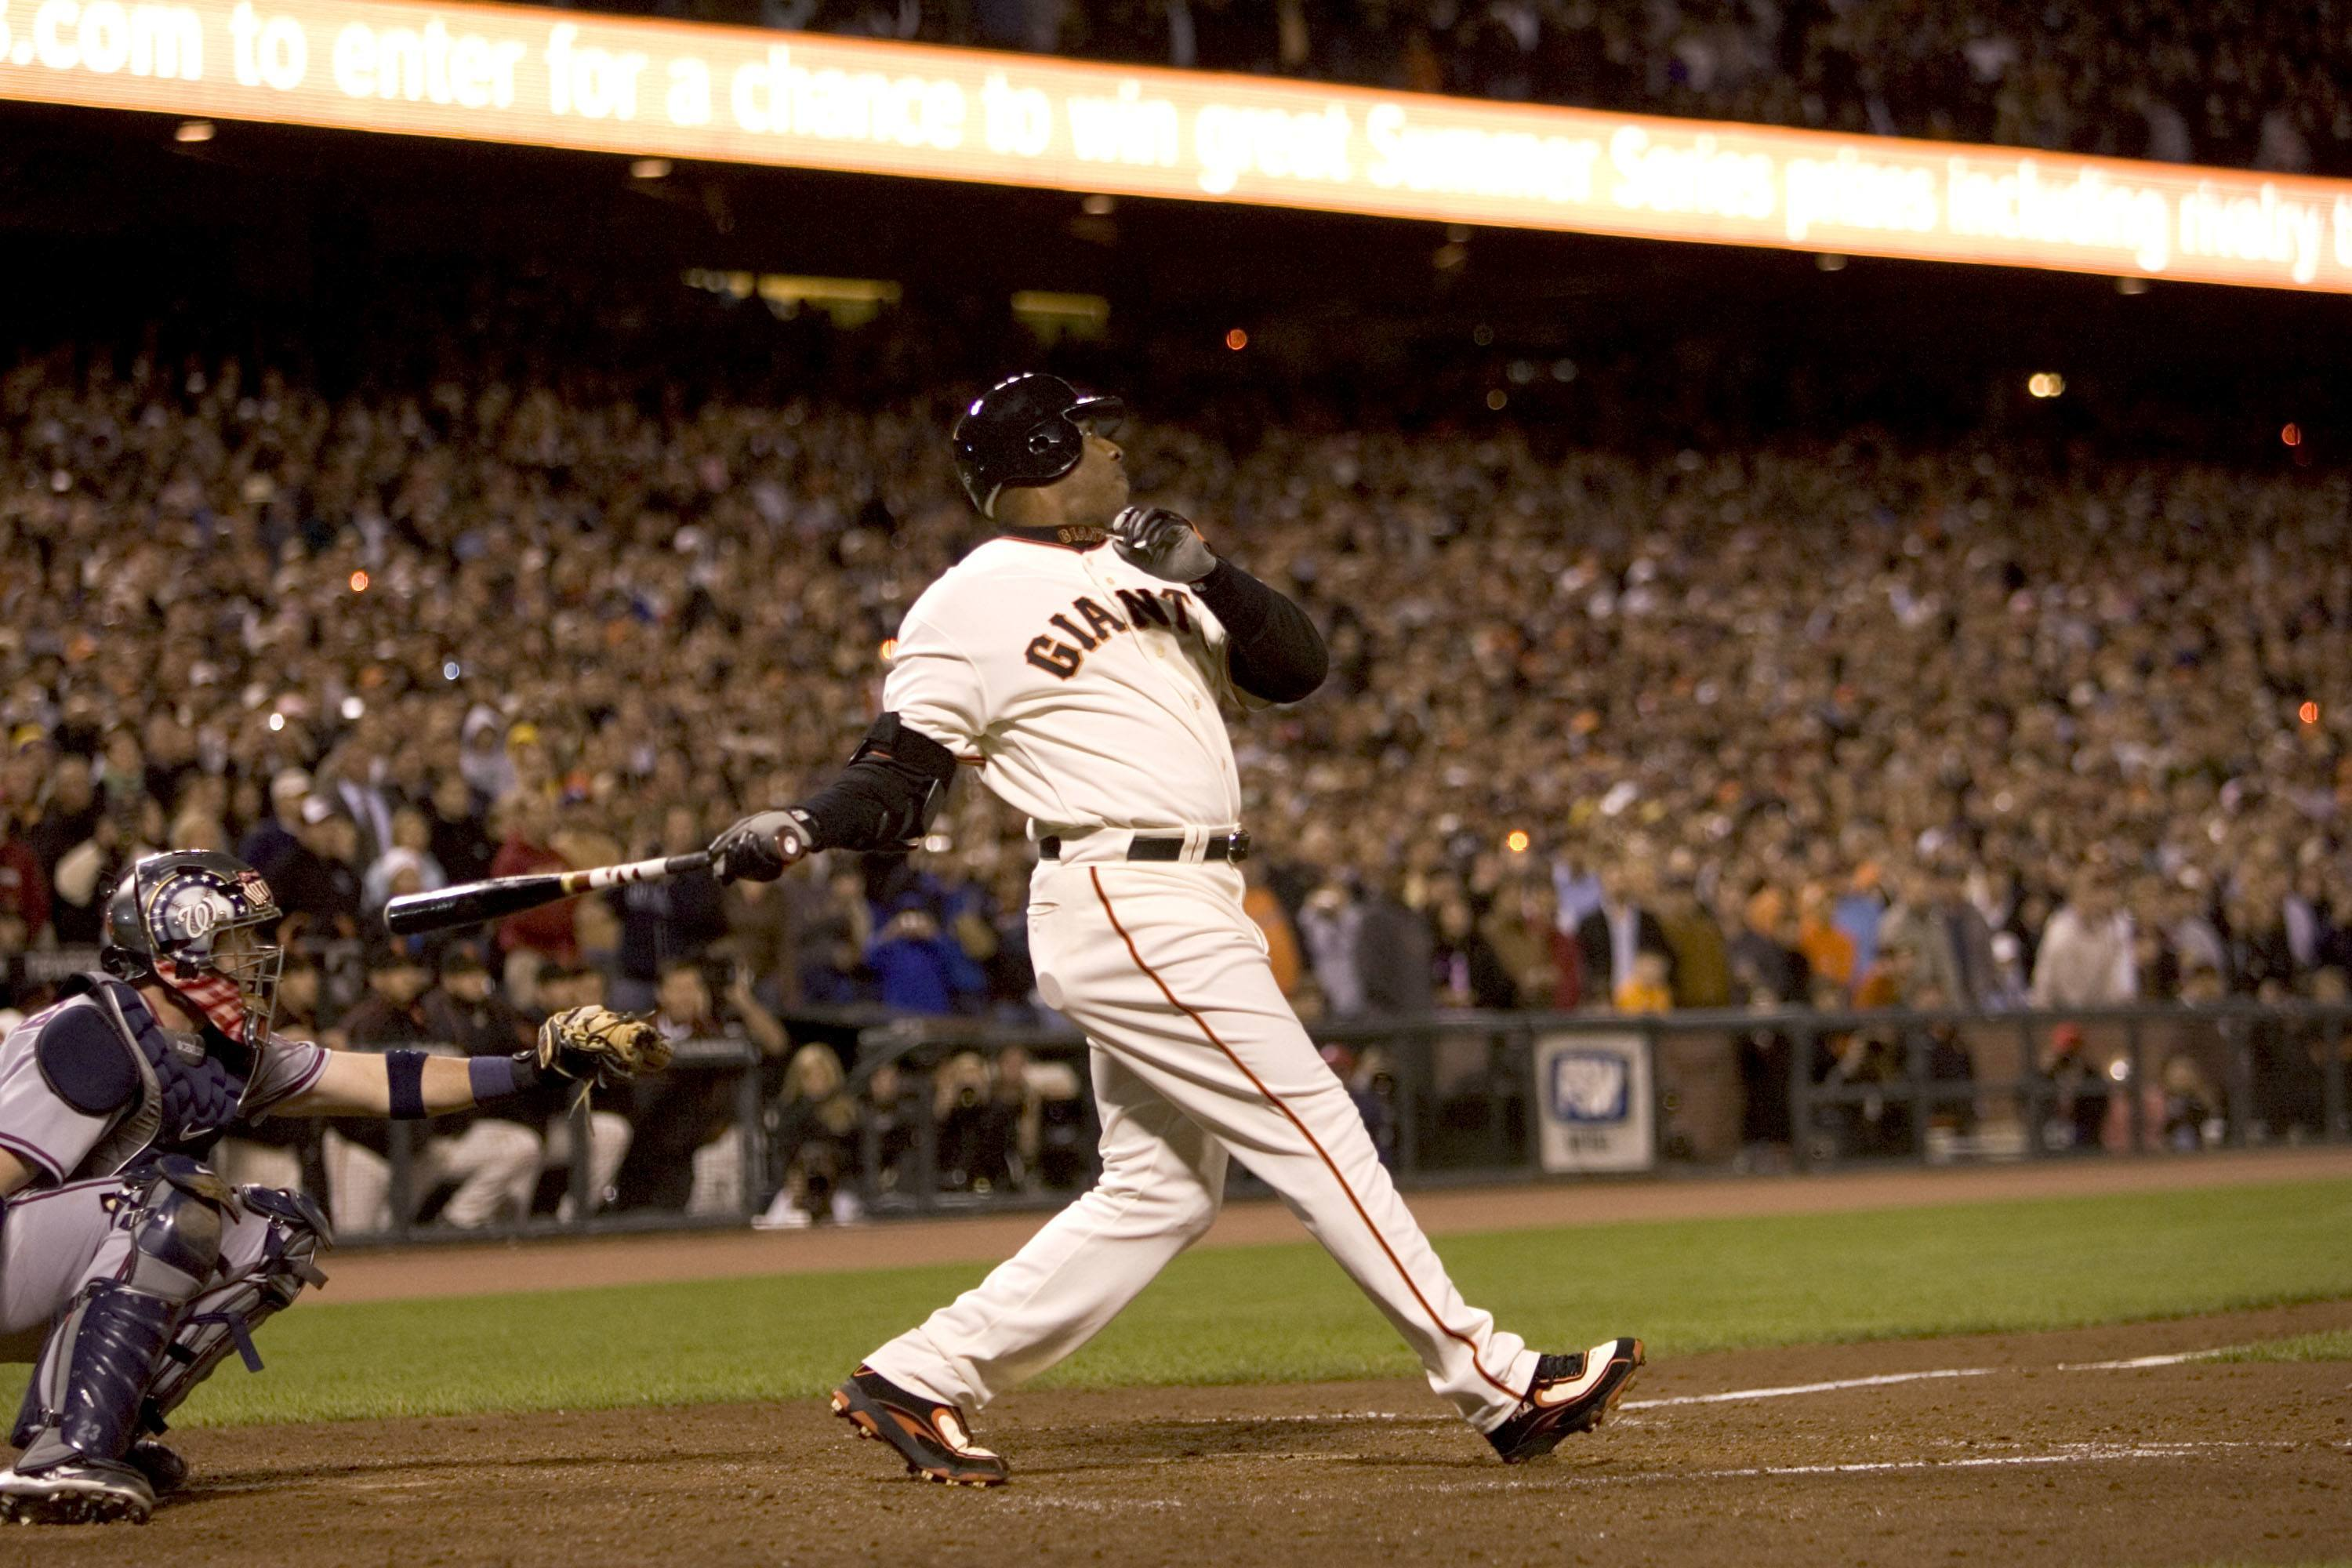 Barry Bonds Hall of Fame Cooperstown chances odds